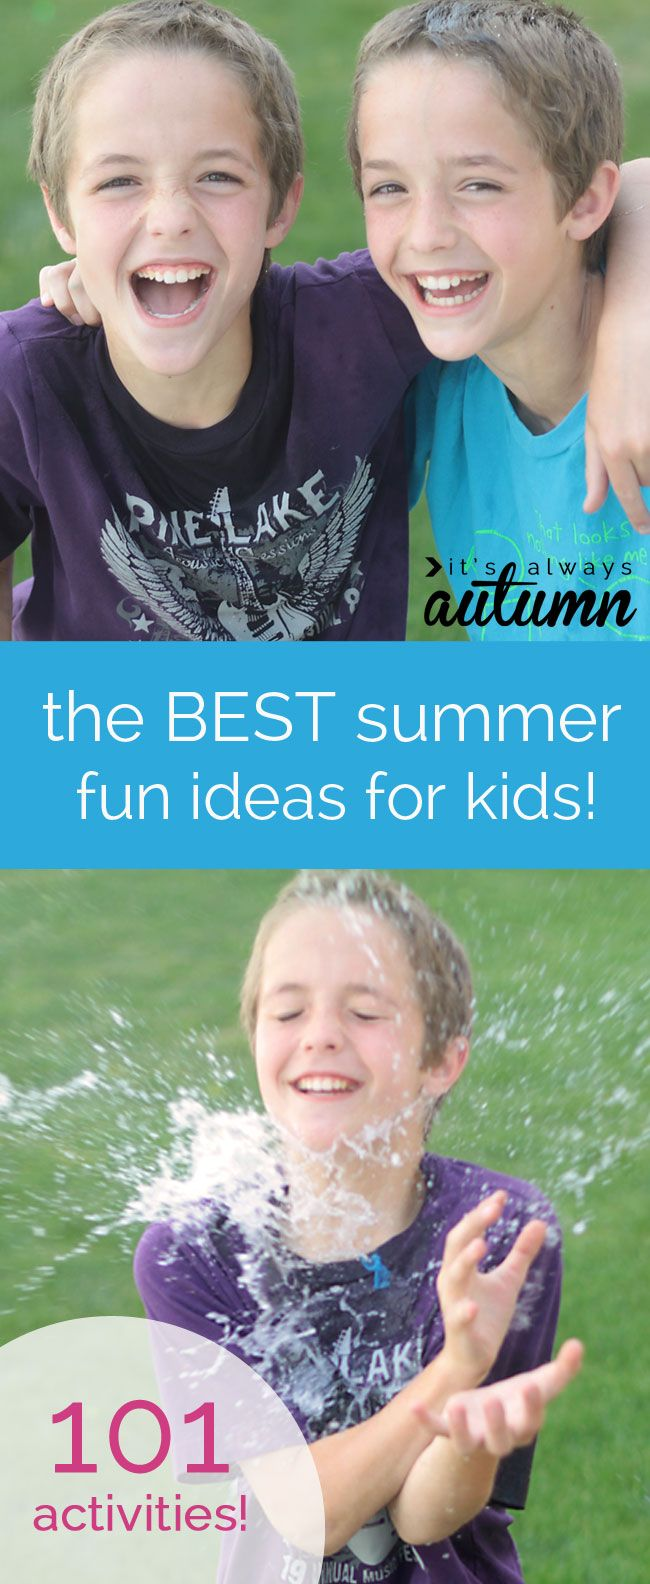 beat summer boredom | 101 fun, easy activities kids can do at home - It's Always Autumn